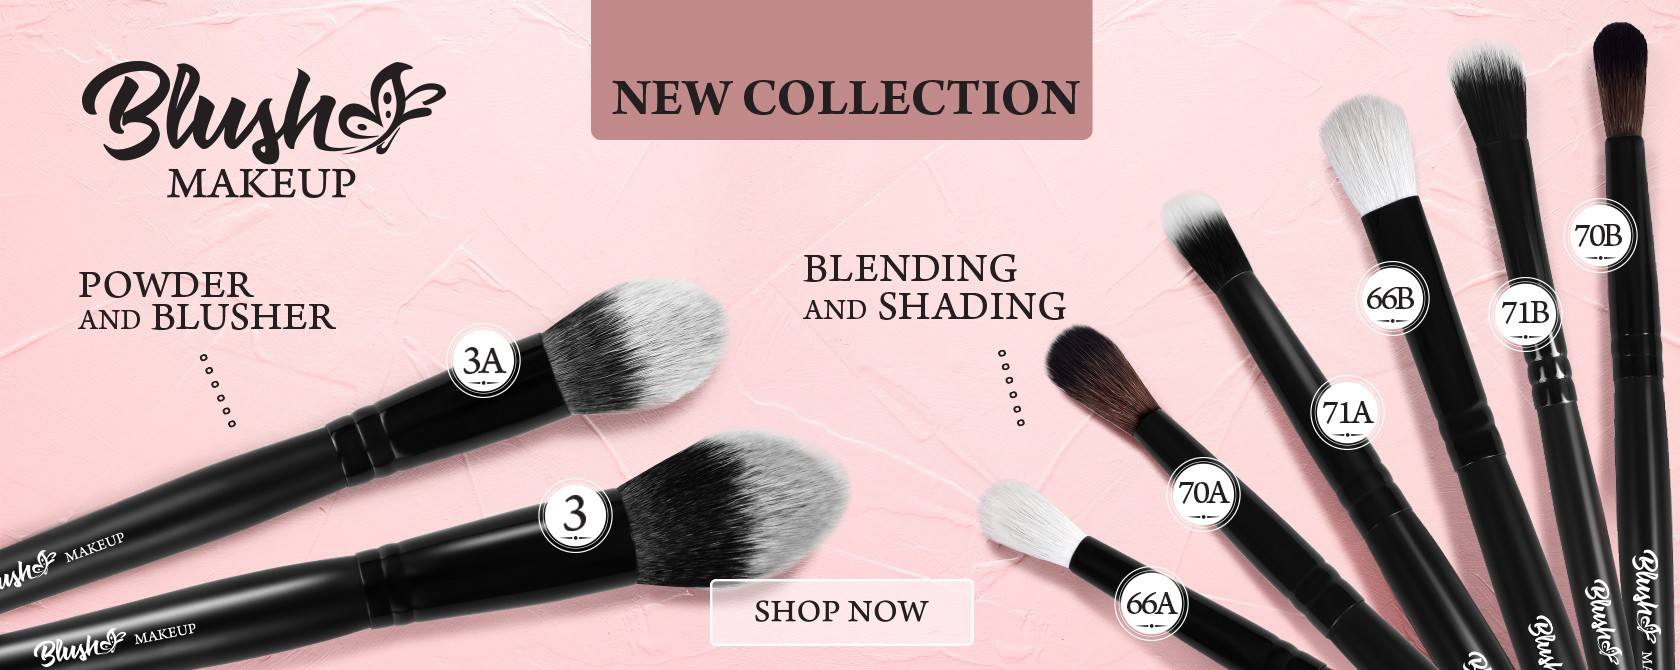 Blush new collection